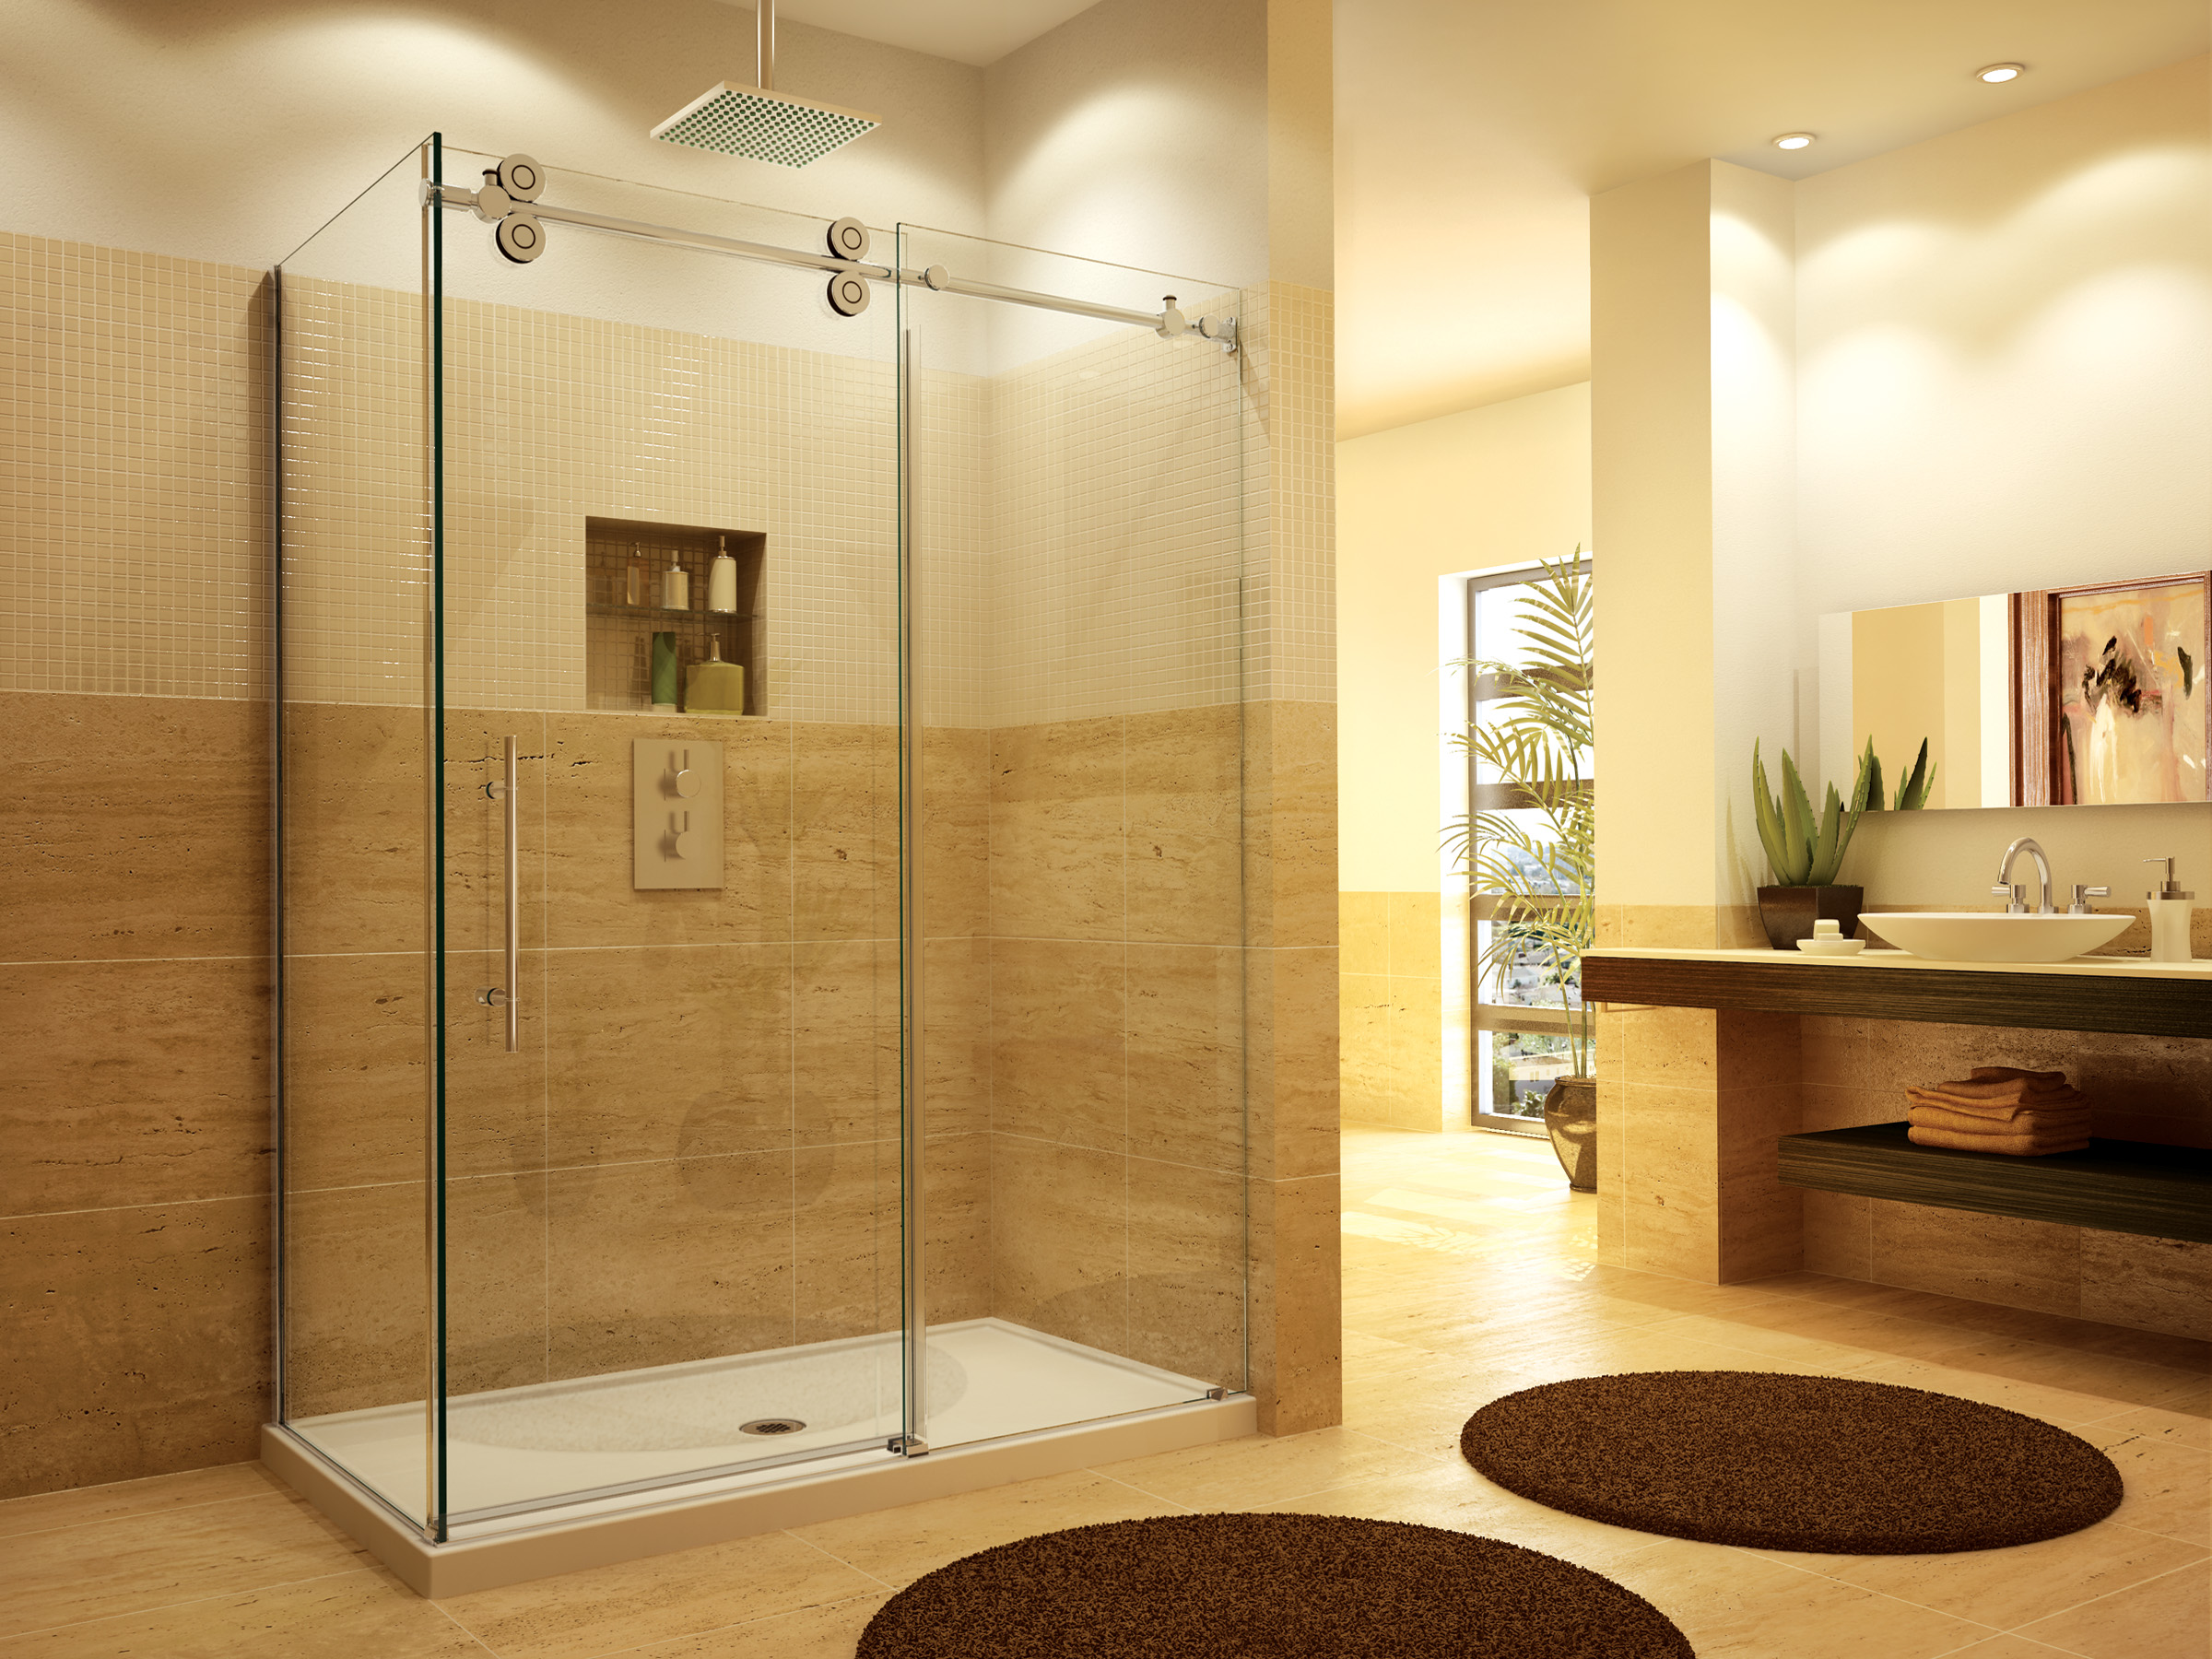 Glass shower door installation in franklin lakes nj glass for Cool shower door ideas